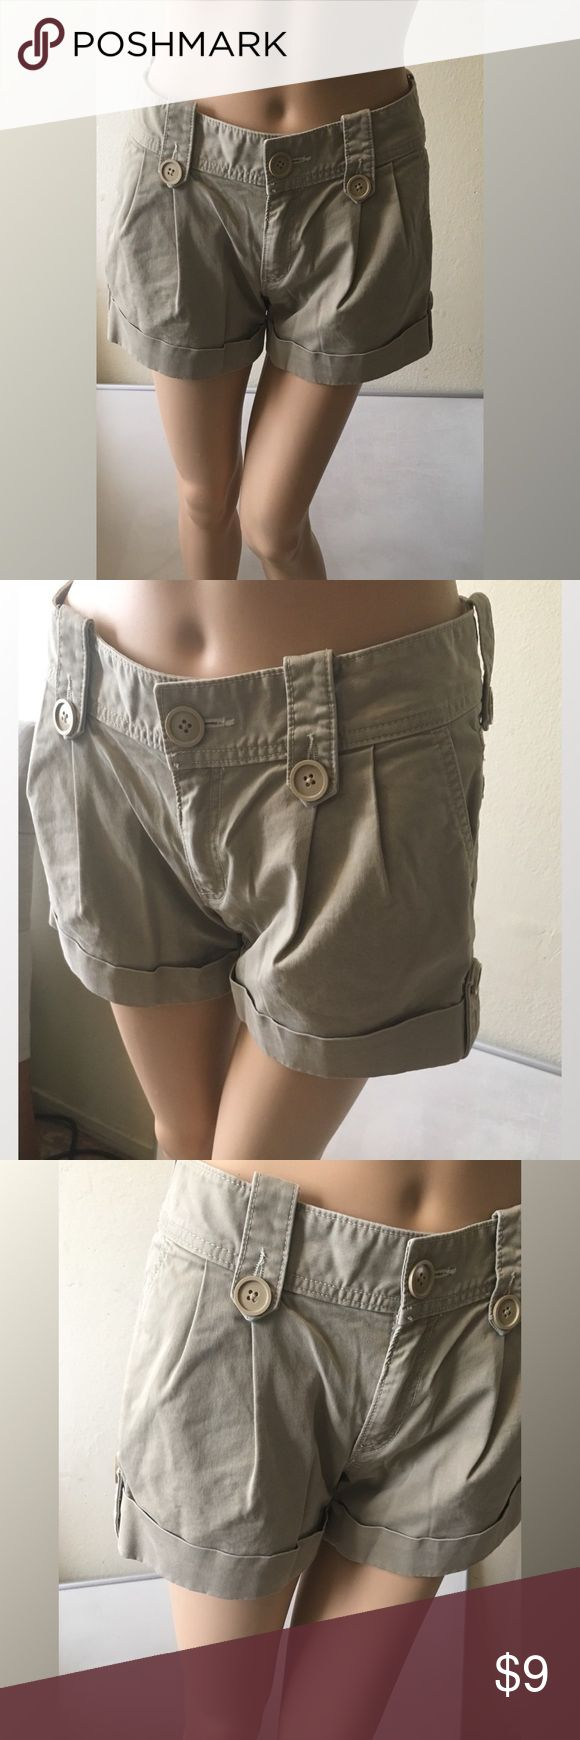 GAP Jeans Stretch Women's Khaki Shorts Size 4 GAP Khakis shorts in very good condition  *Measurements on flat surface*  Waist 15 in  Length 11.5 in  Inseam 3.5 in  Hip 19 in  Rise 8.5 in   98% cotton, 2% Lycra GAP Shorts